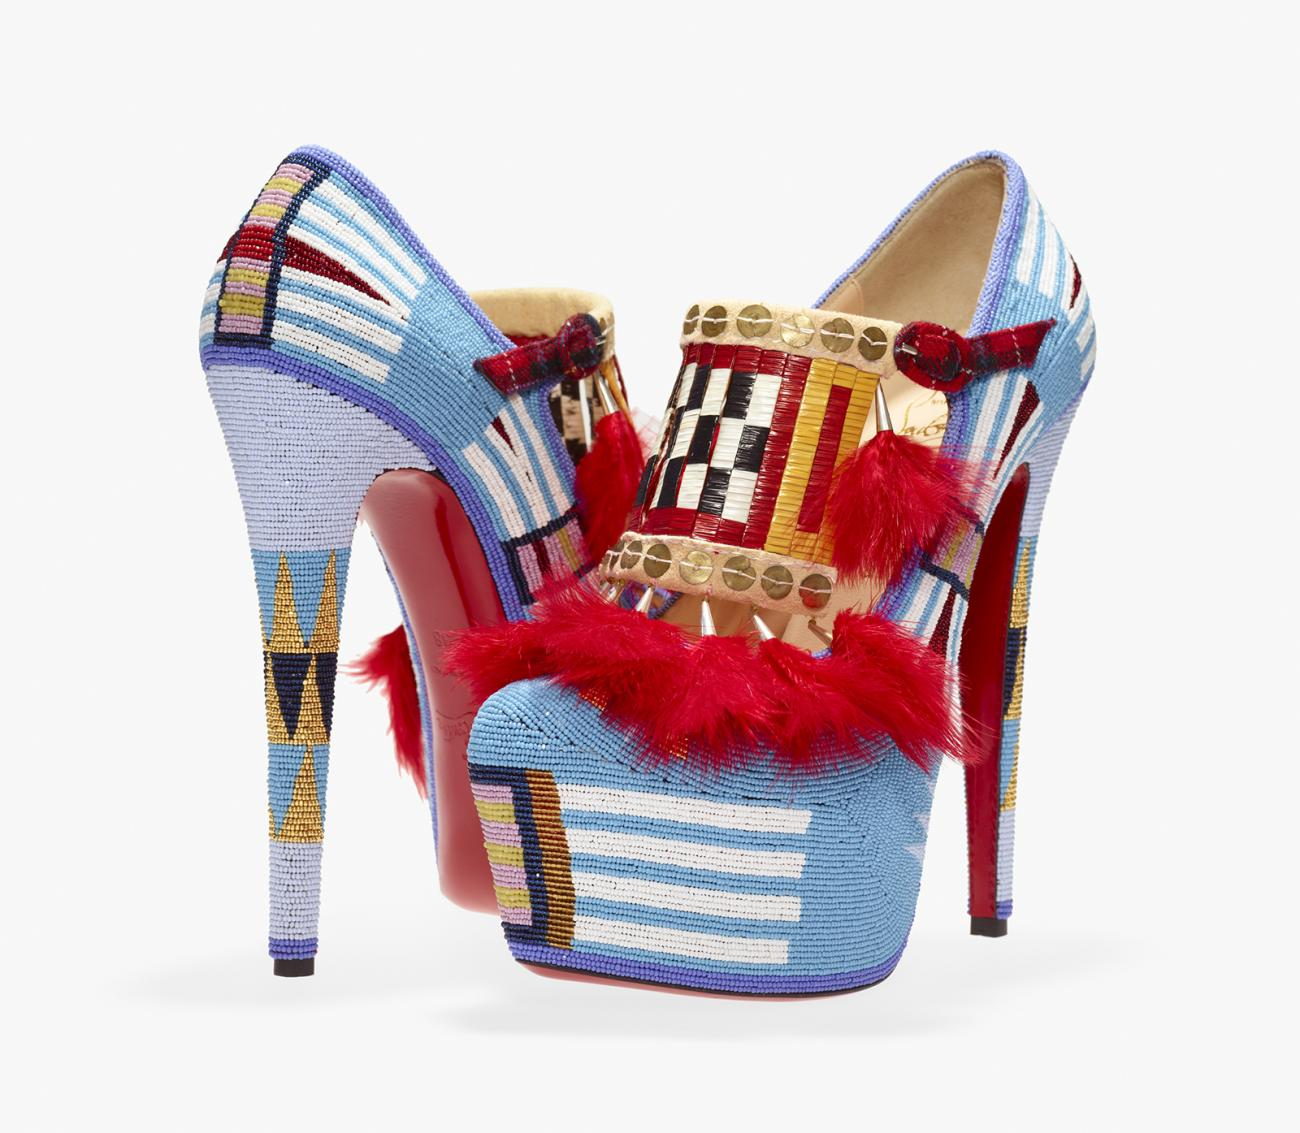 Two high heel shoes made fro beads, sequins, feathers and other items.